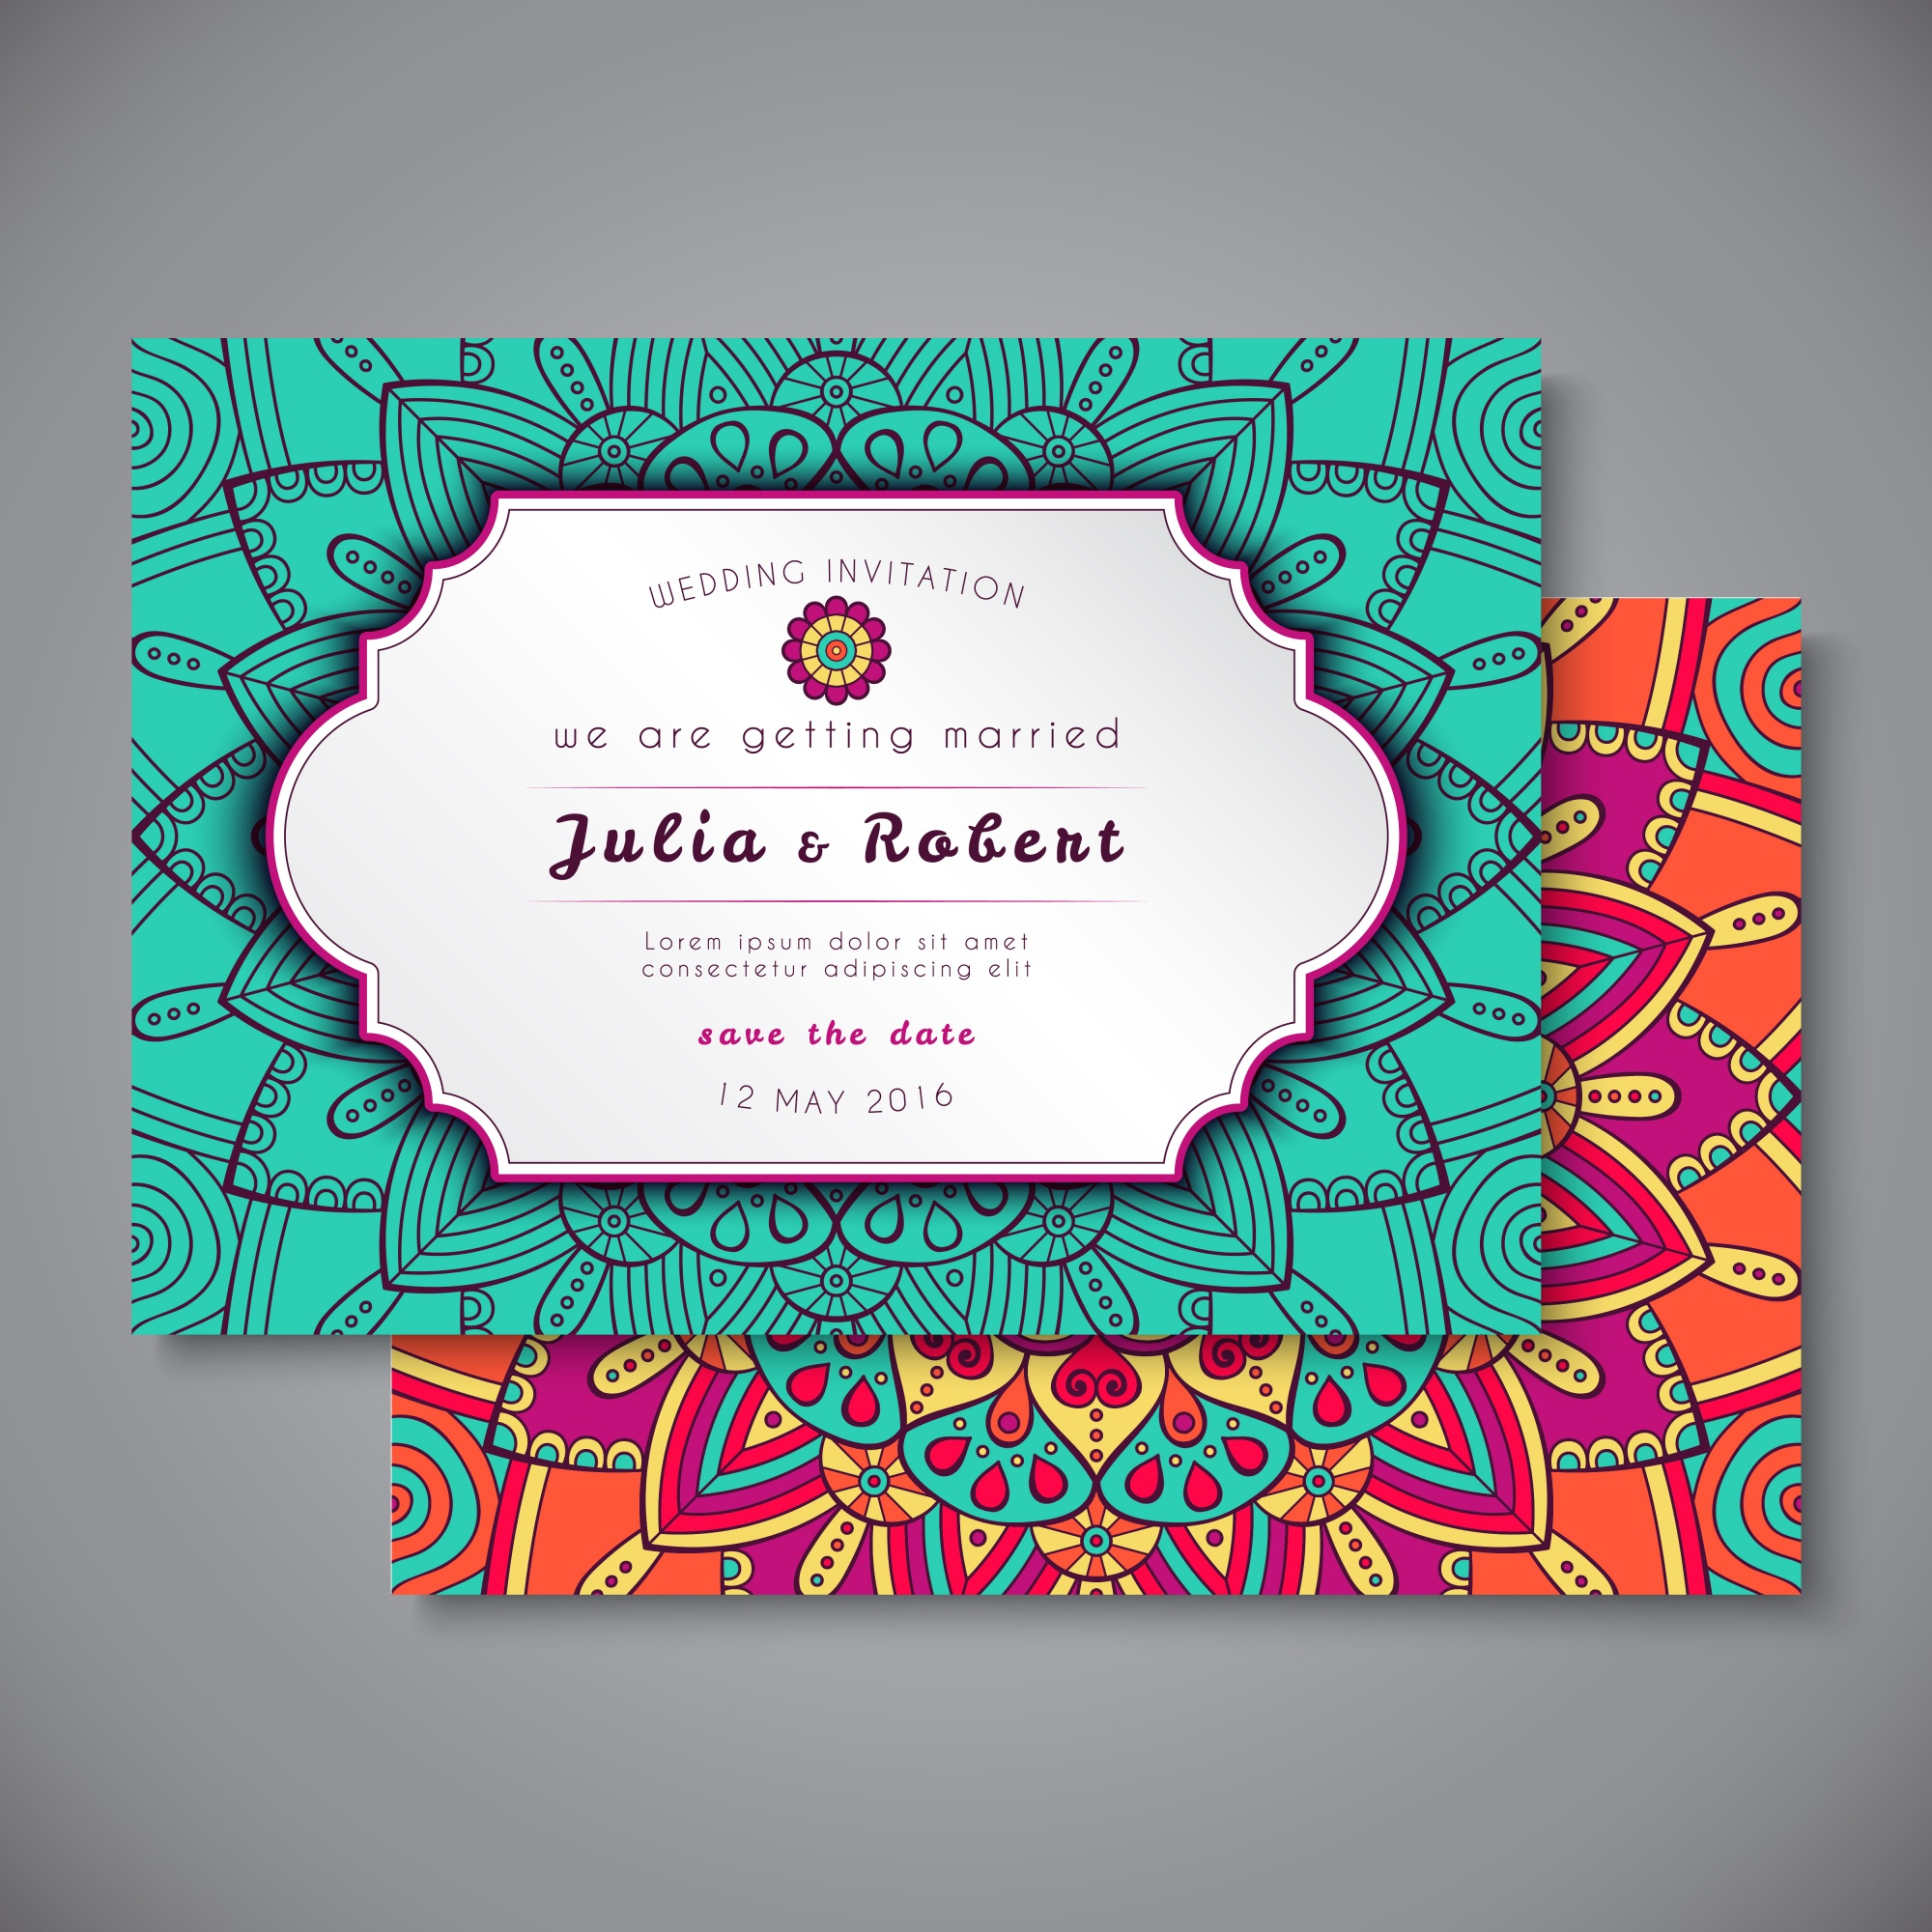 Wedding invitation with colorful ornaments